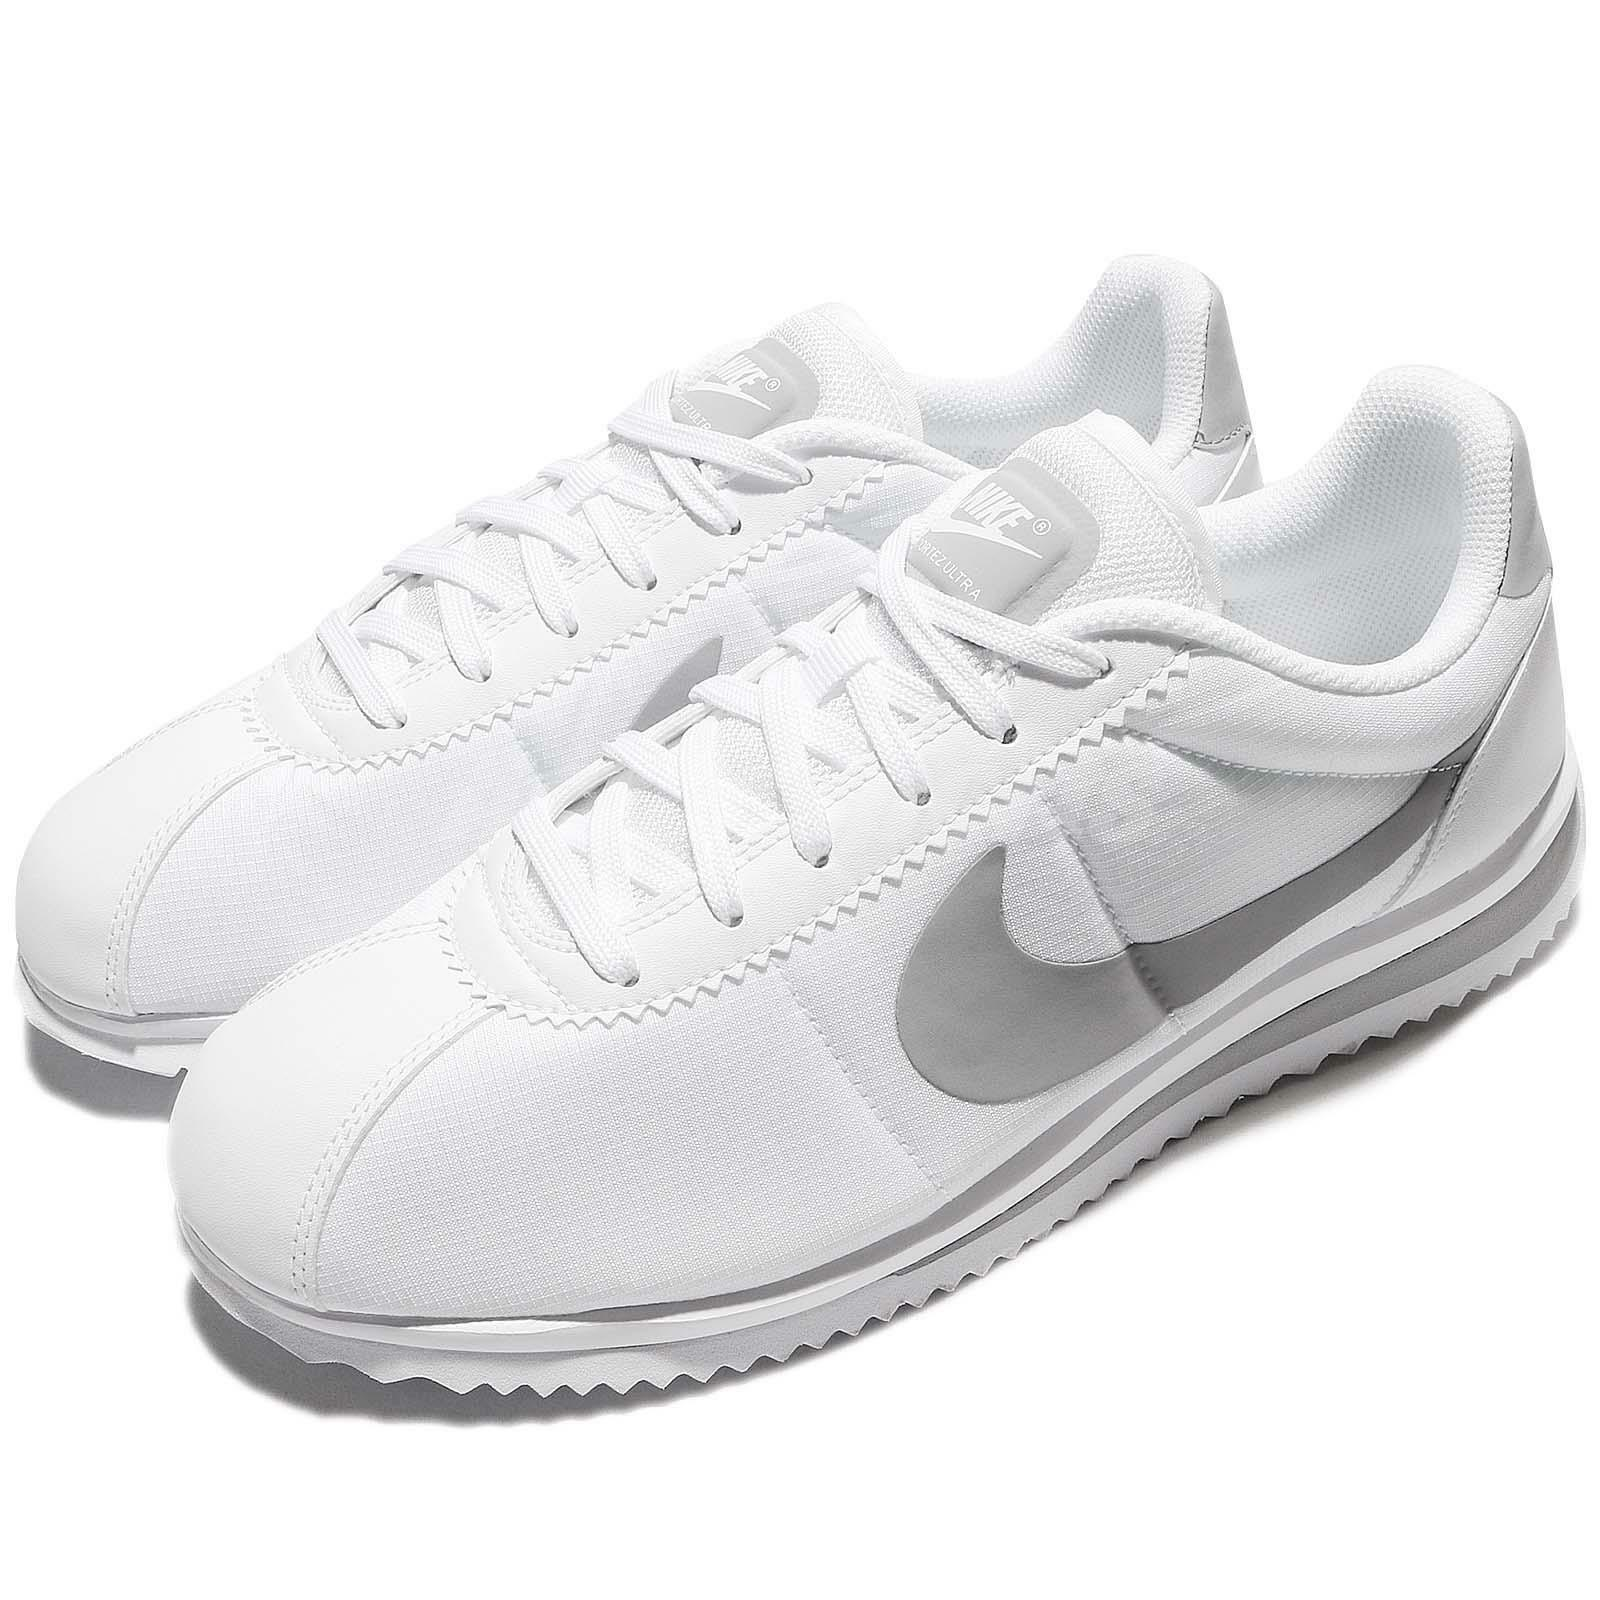 Nike Cortez Ultra SD White Wolf Grey Classic Men Shoes Sneakers 903893-102